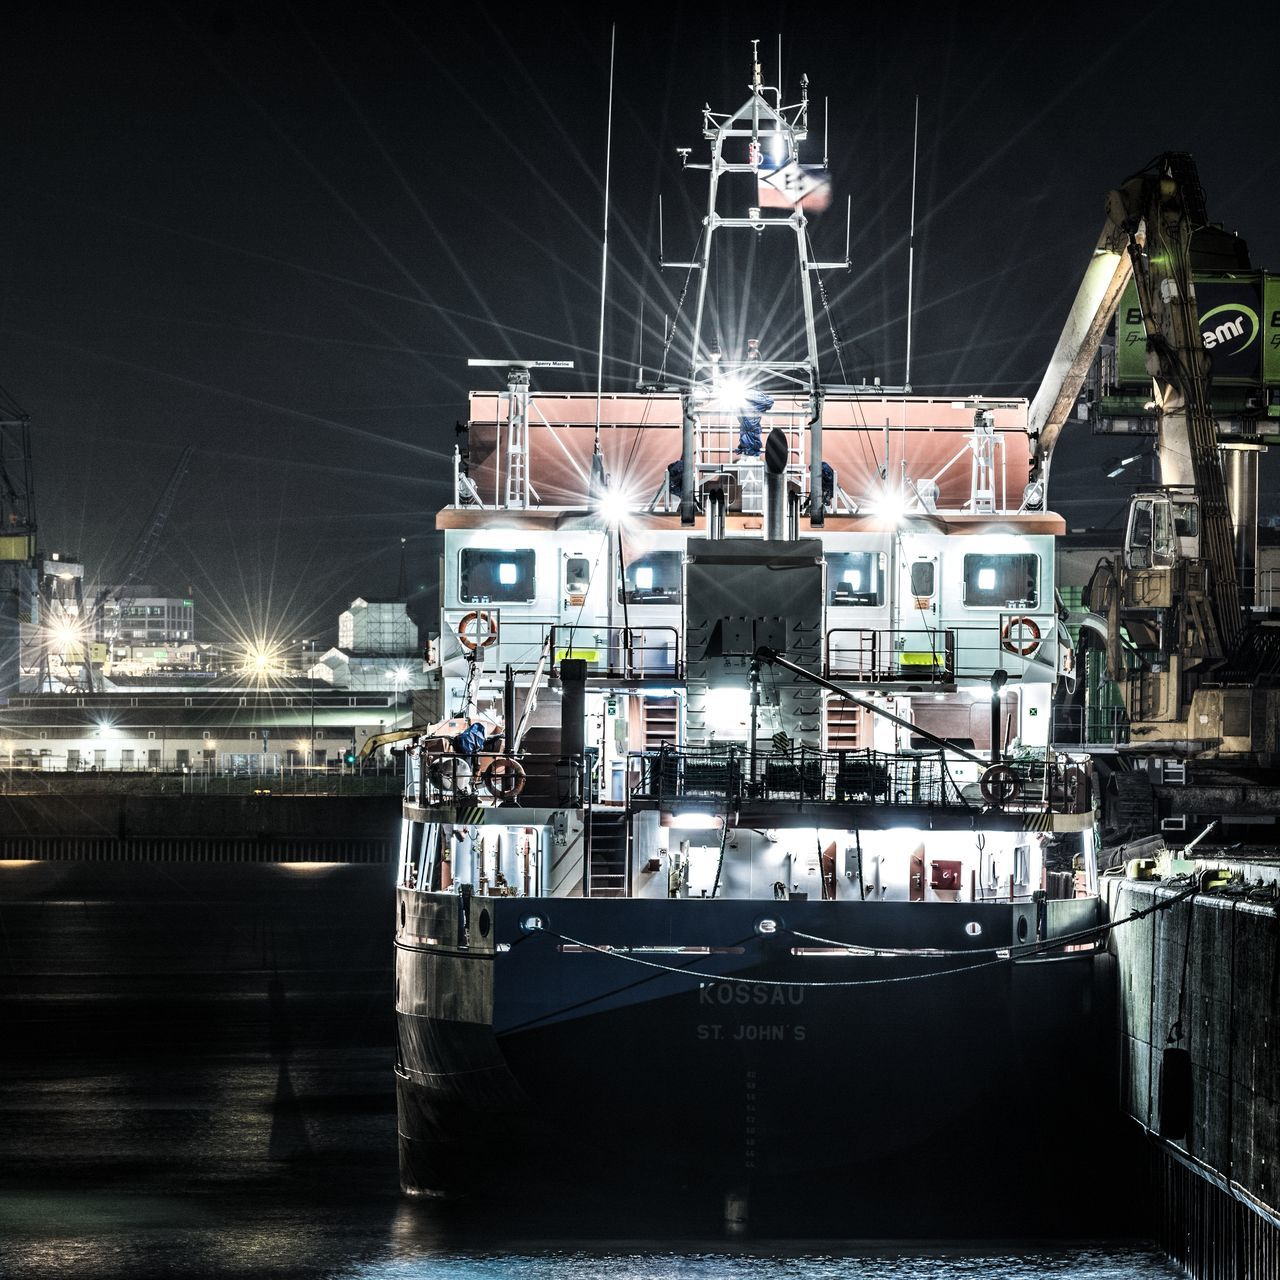 Kossau Architecture Building Exterior Commercial Dock Hamburg Harbour Harbor Illuminated Industry Mode Of Transport Moored Nautical Vessel Night No People Outdoors Ship Shipyard Transportation Water